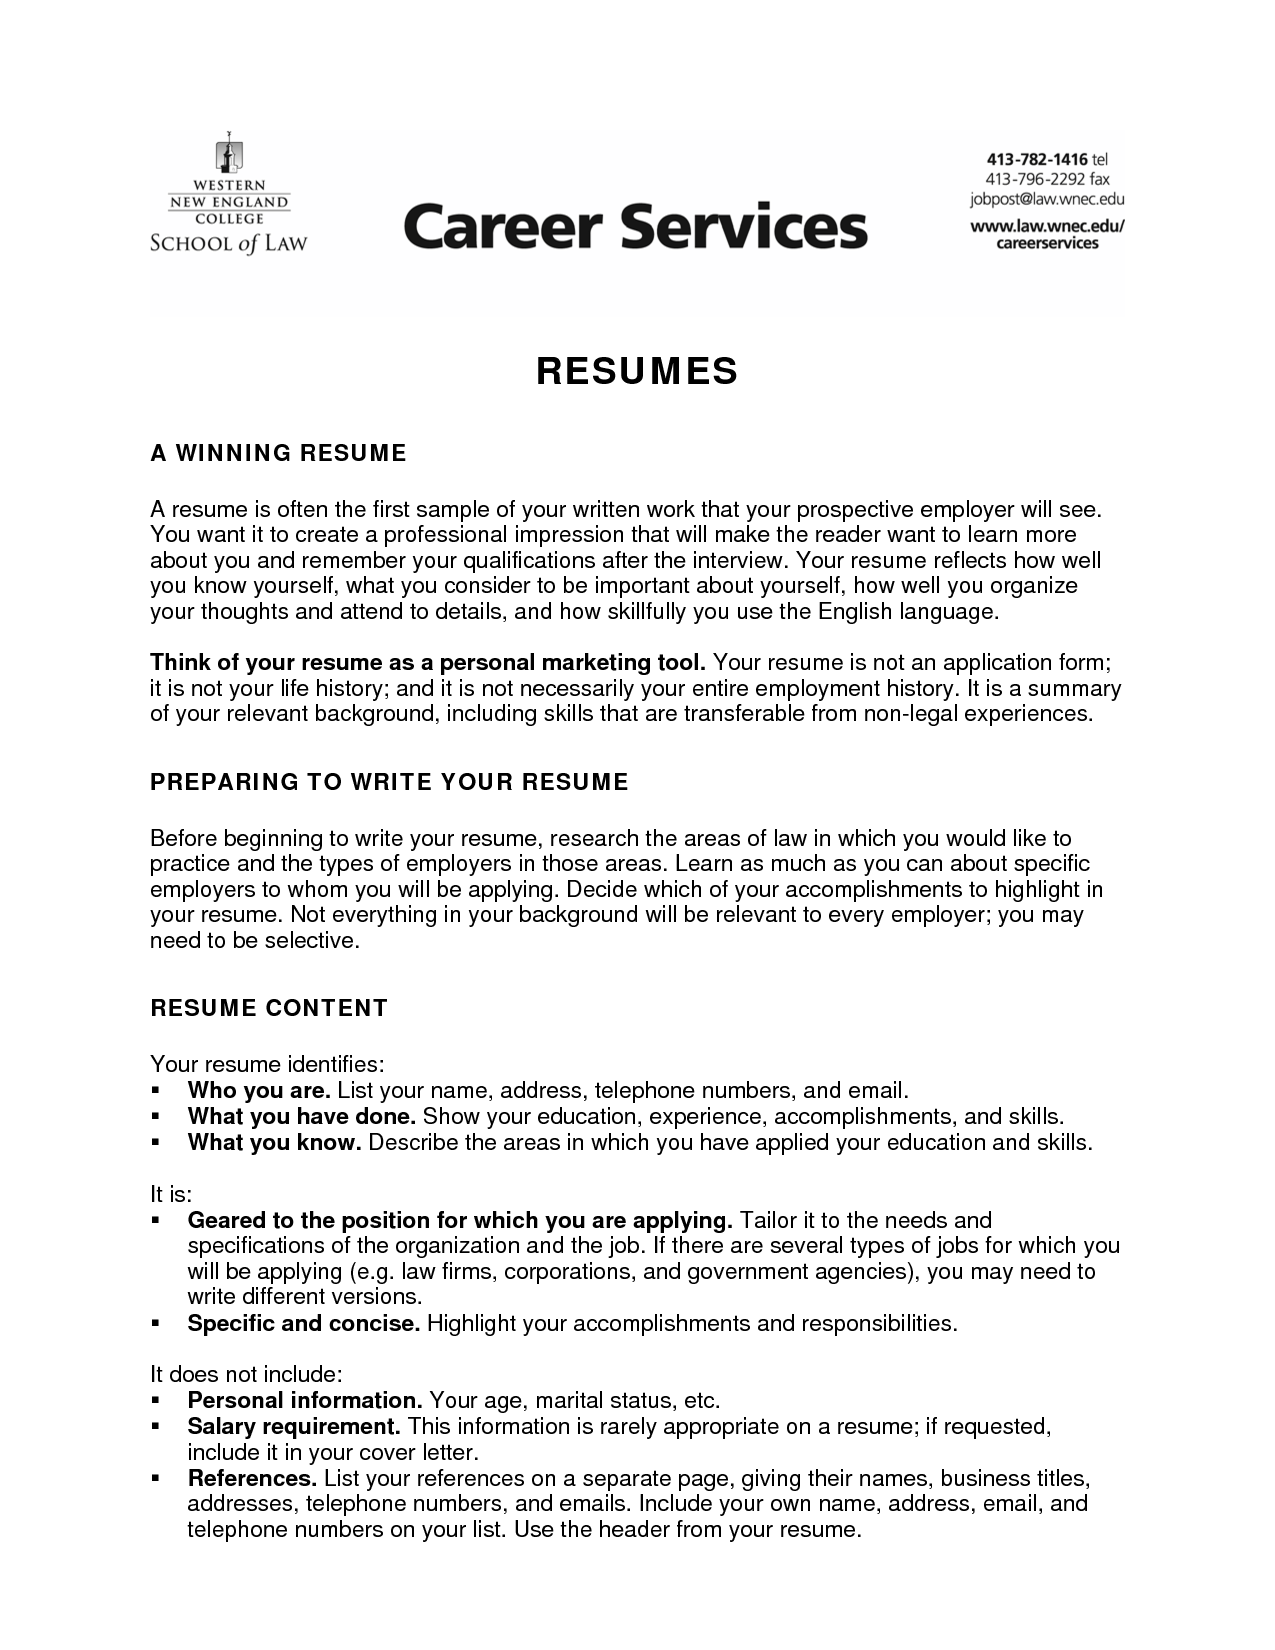 How To Write A Resume Objective Objective Resume Criminal Justice  Httpwwwresumecareer